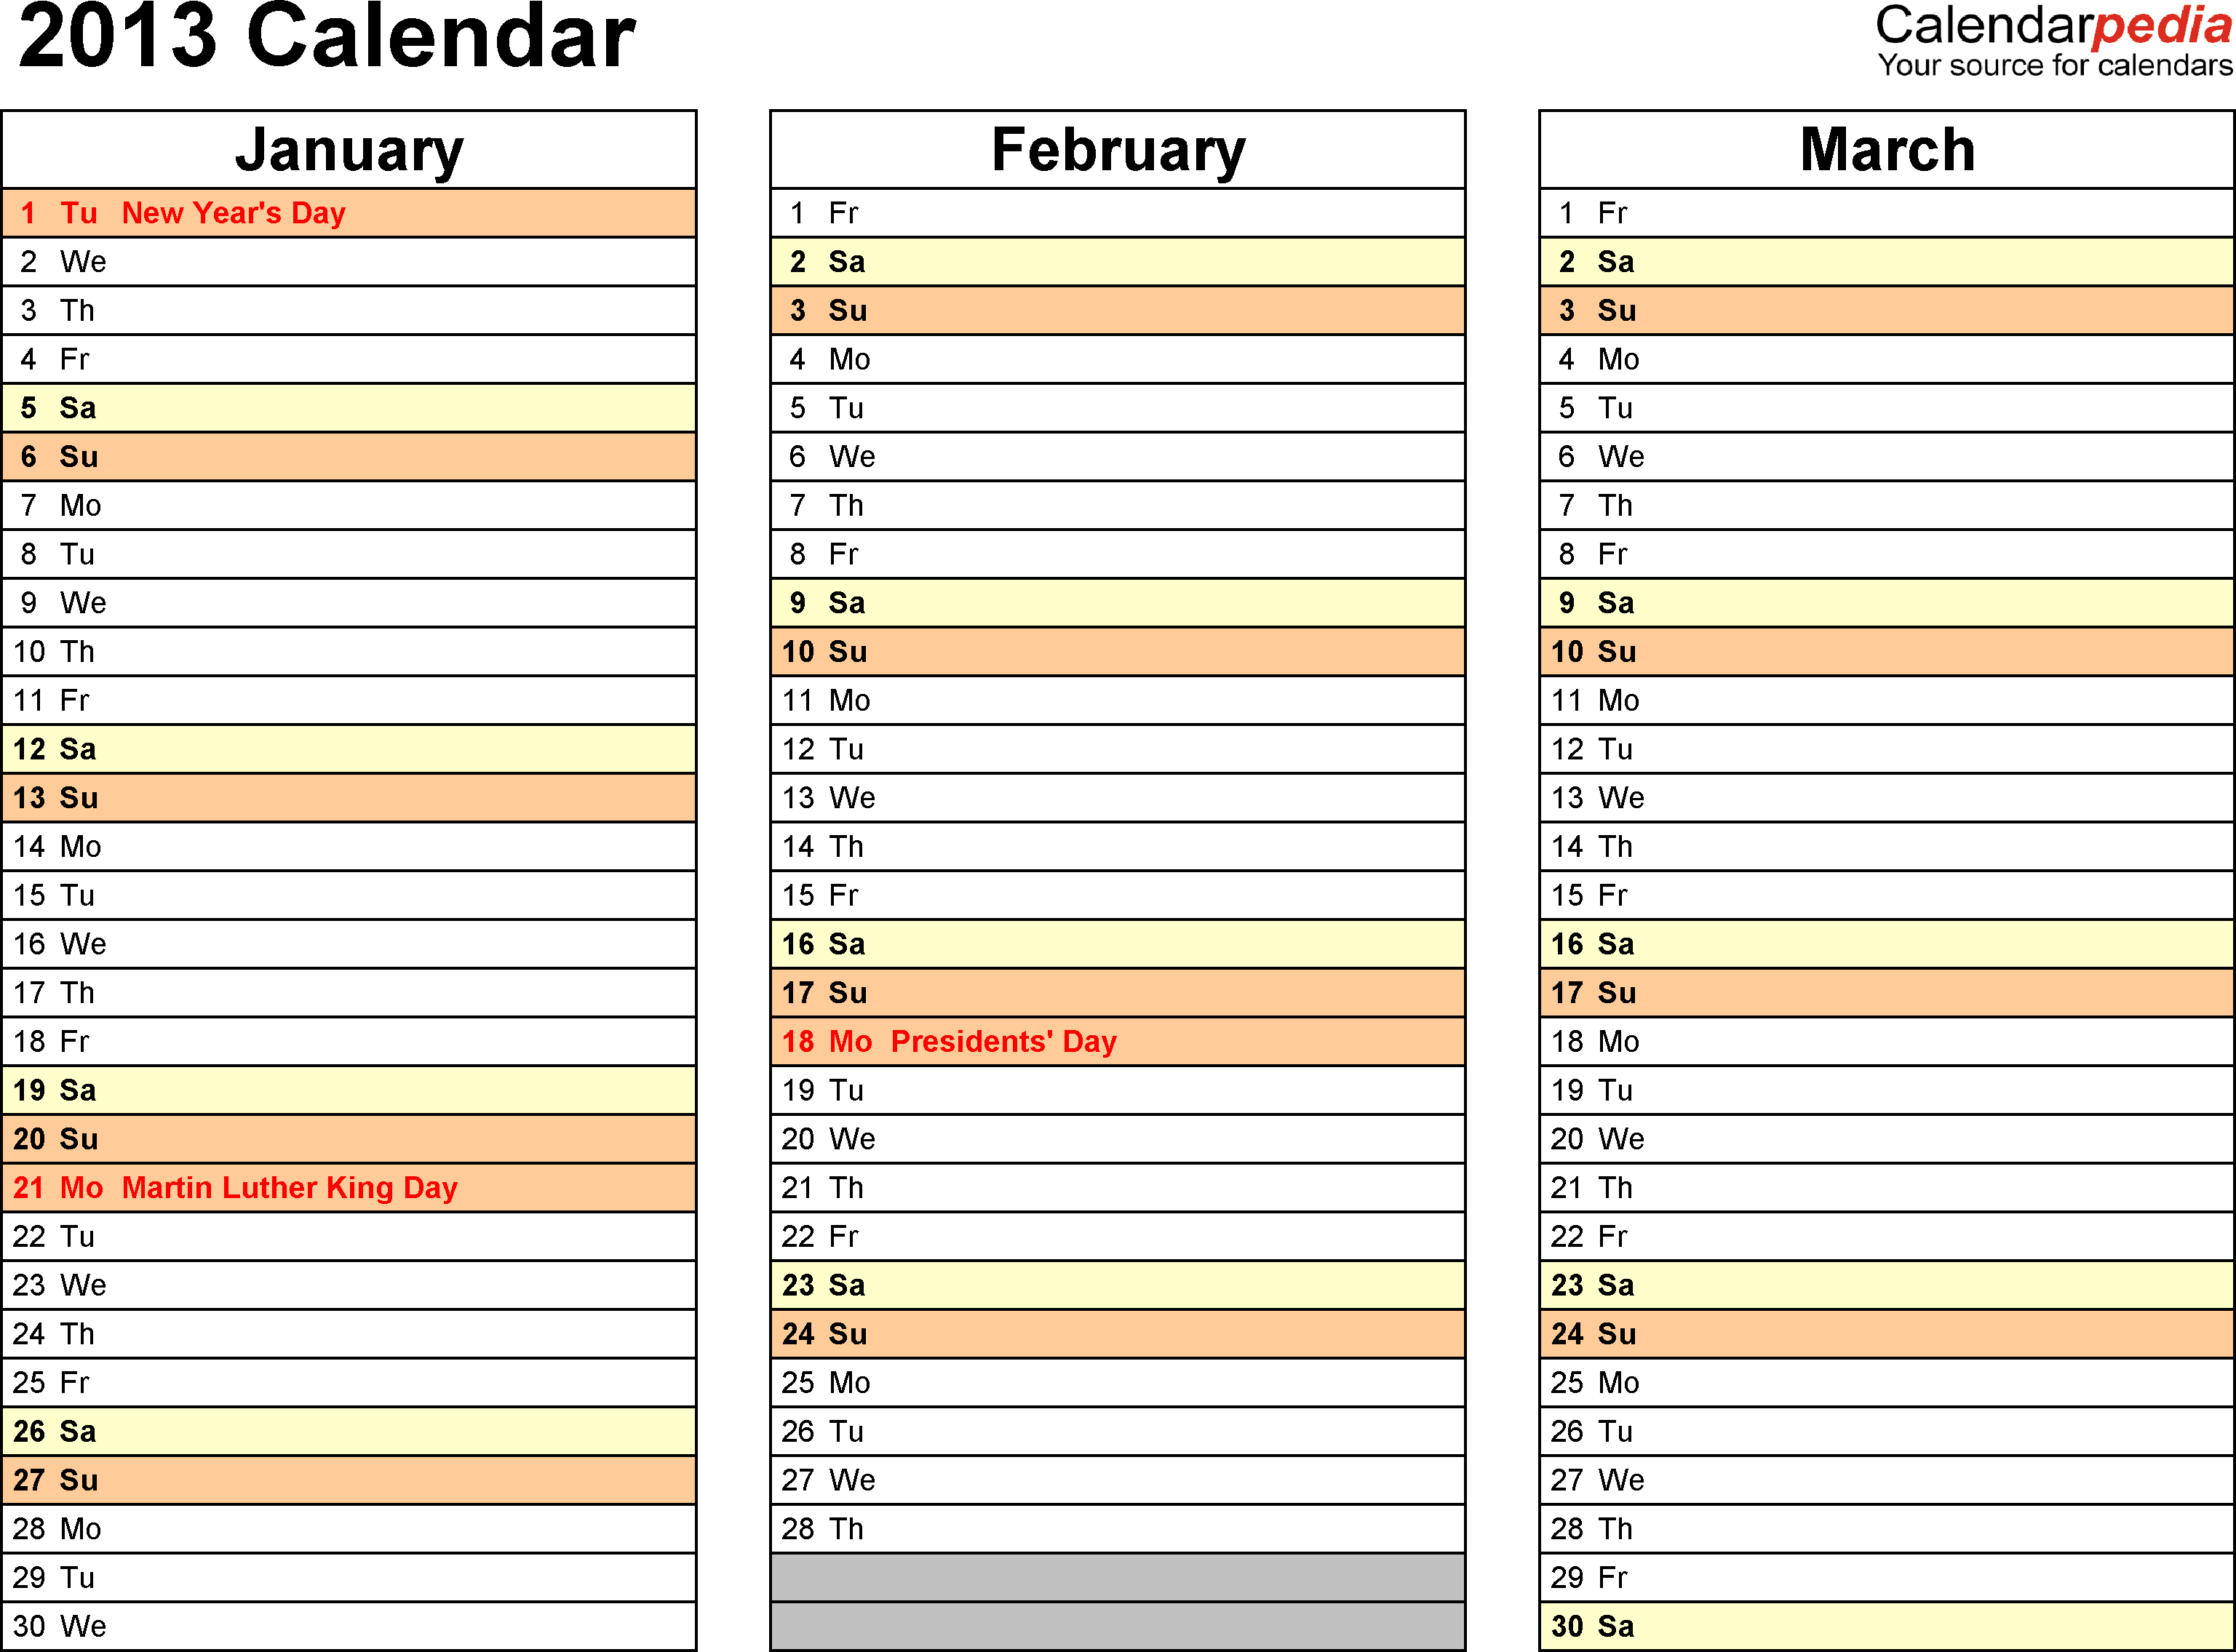 Download PDF template for 2013 calendar template 6: landscape orientation, 4 pages, months horizontally, days vertically, with US federal holidays 2013, paper format: US letter